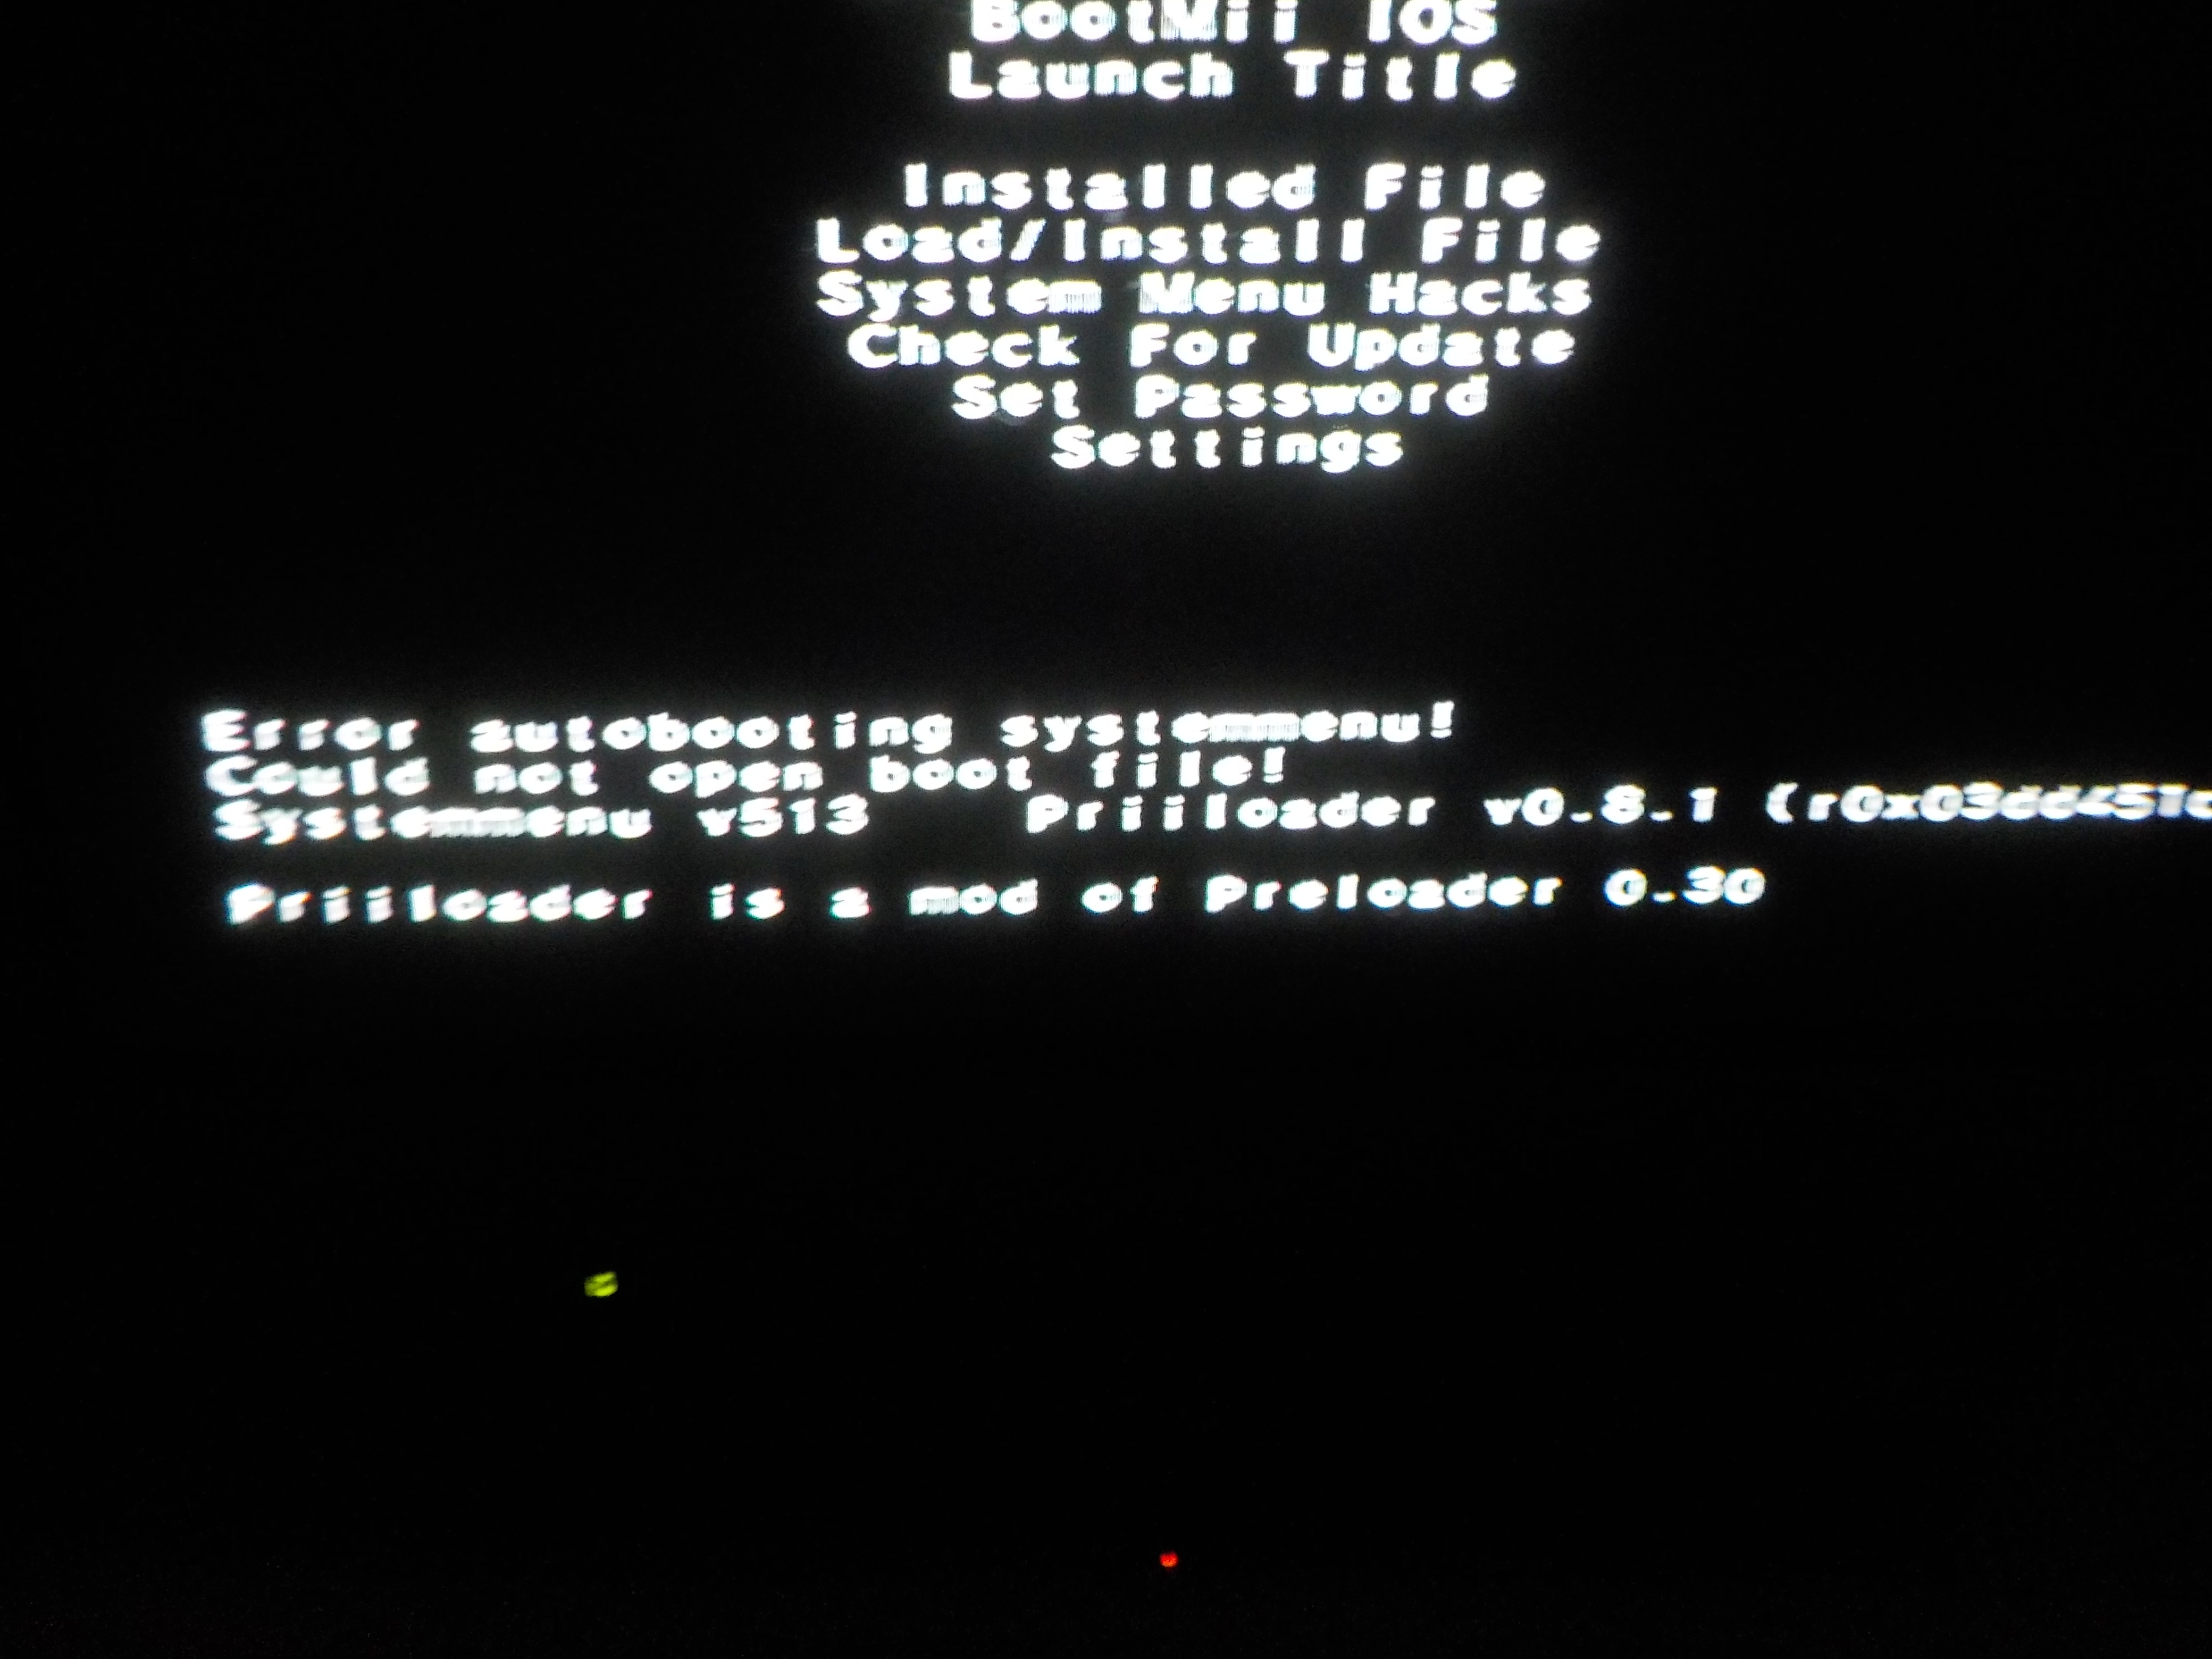 Installing Homebrew Browser Exception Dsi Occurred Wii